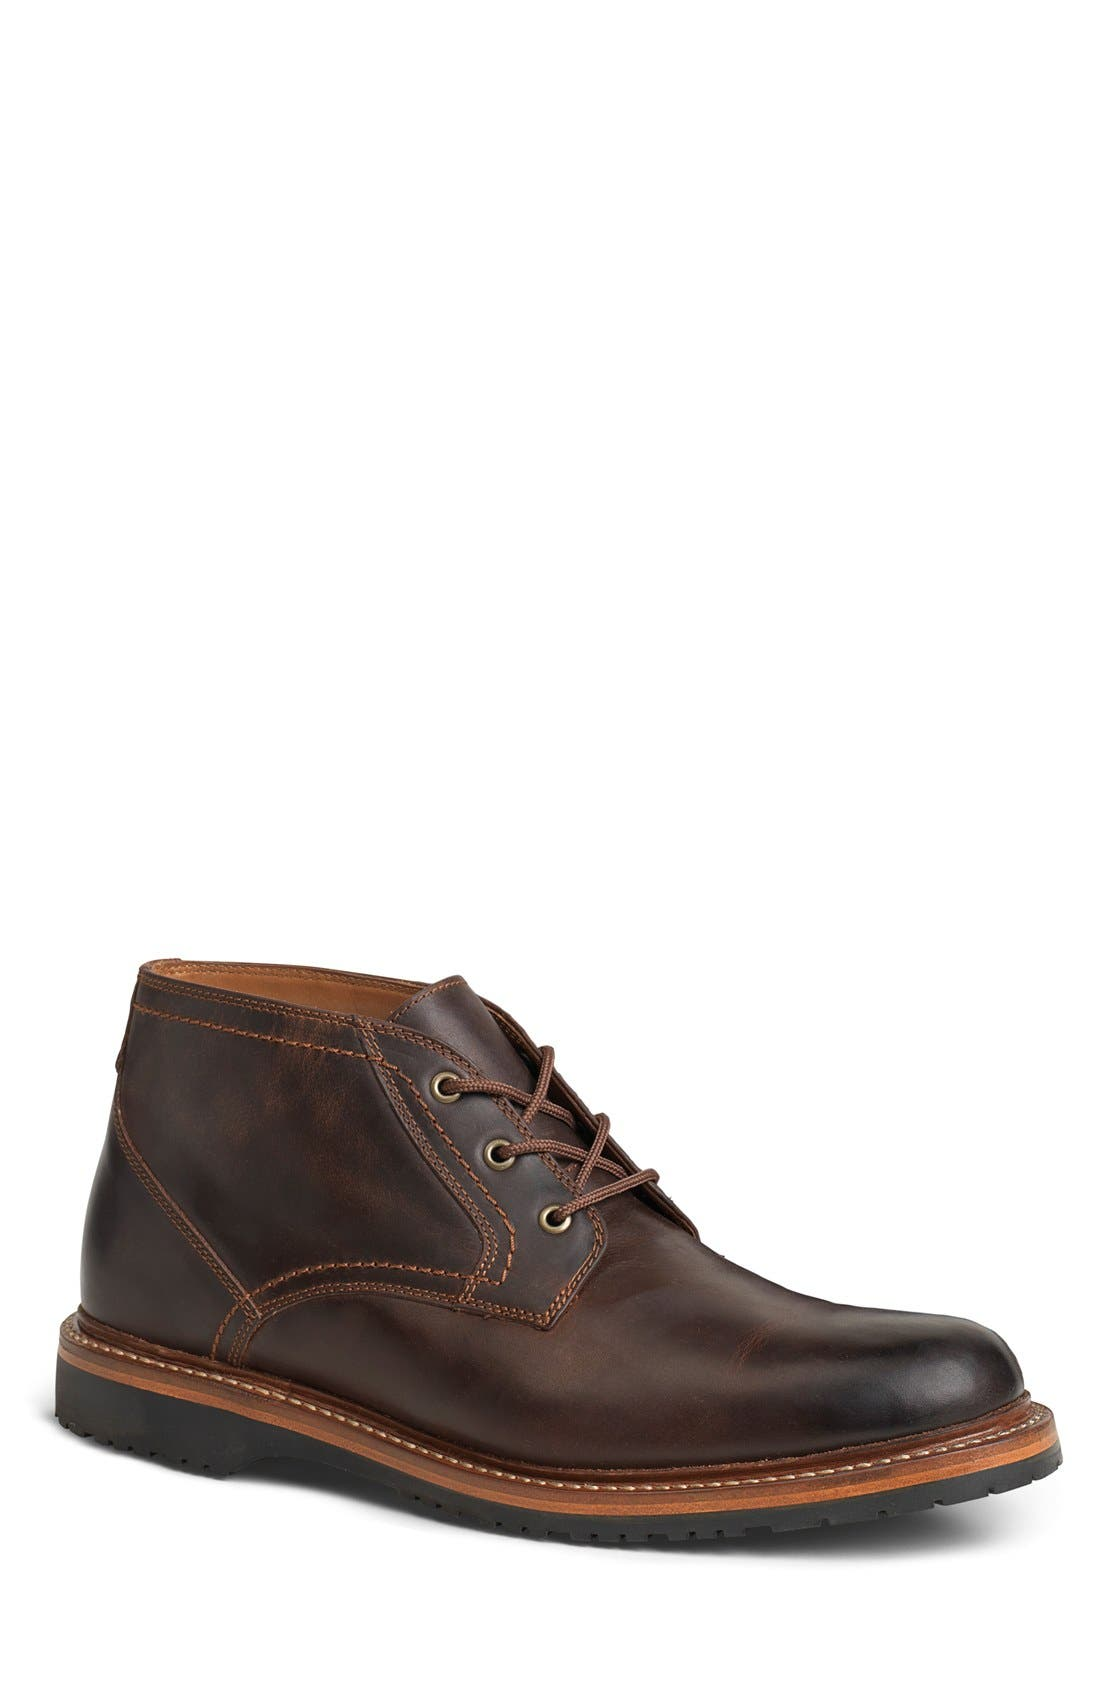 TRASK Arlington Chukka Boot, Main, color, BROWN